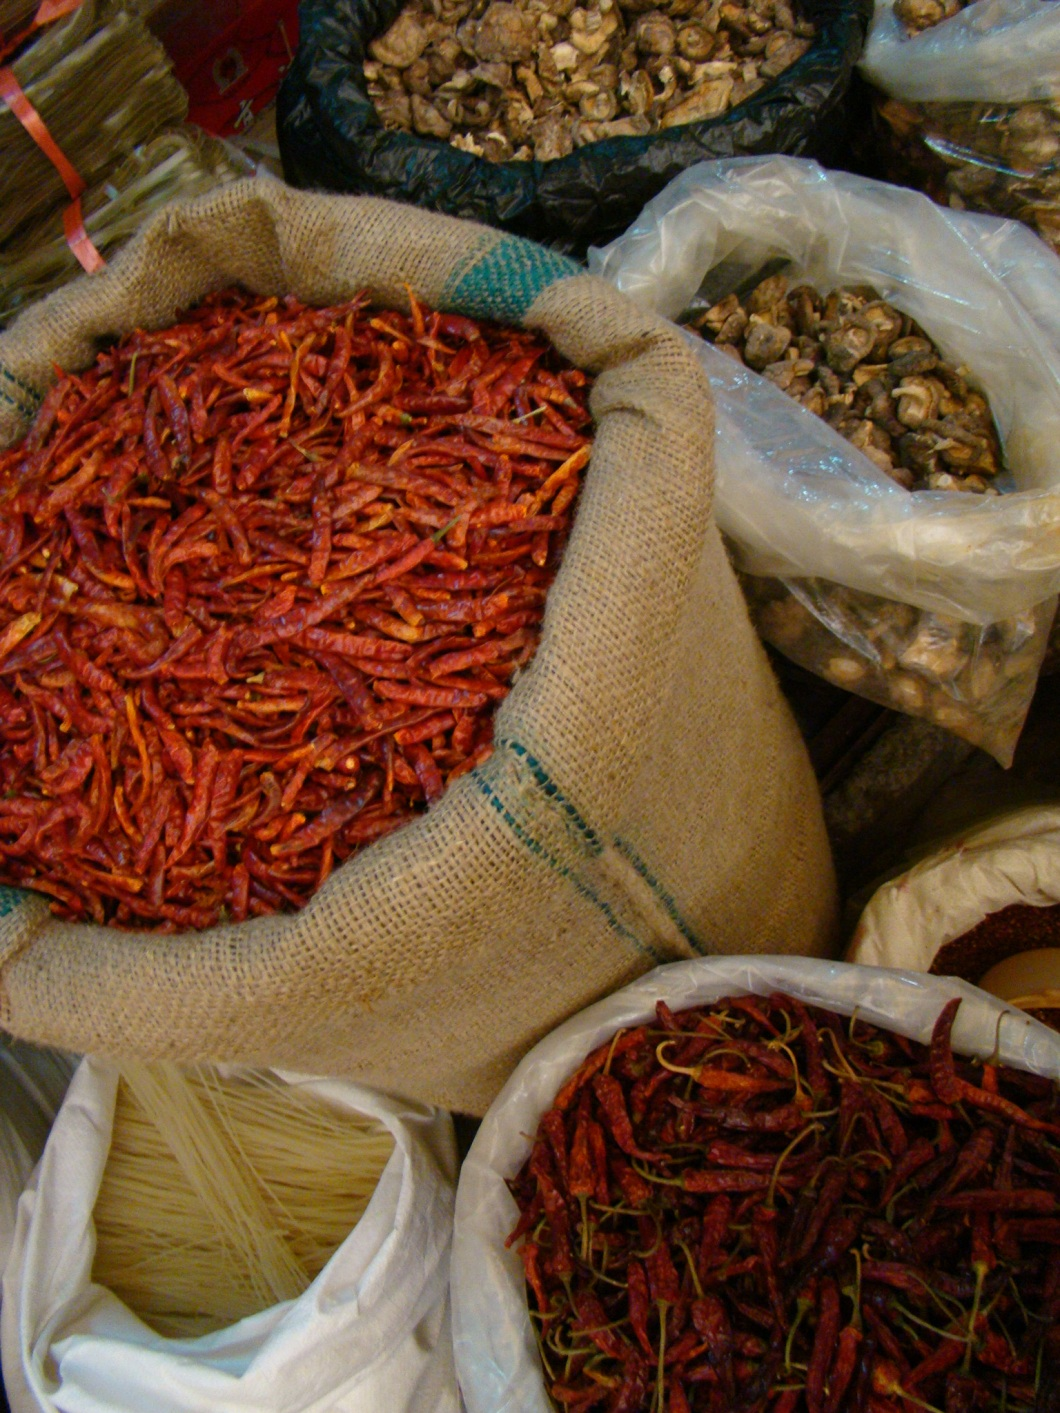 The air was filled with the aroma of chilies